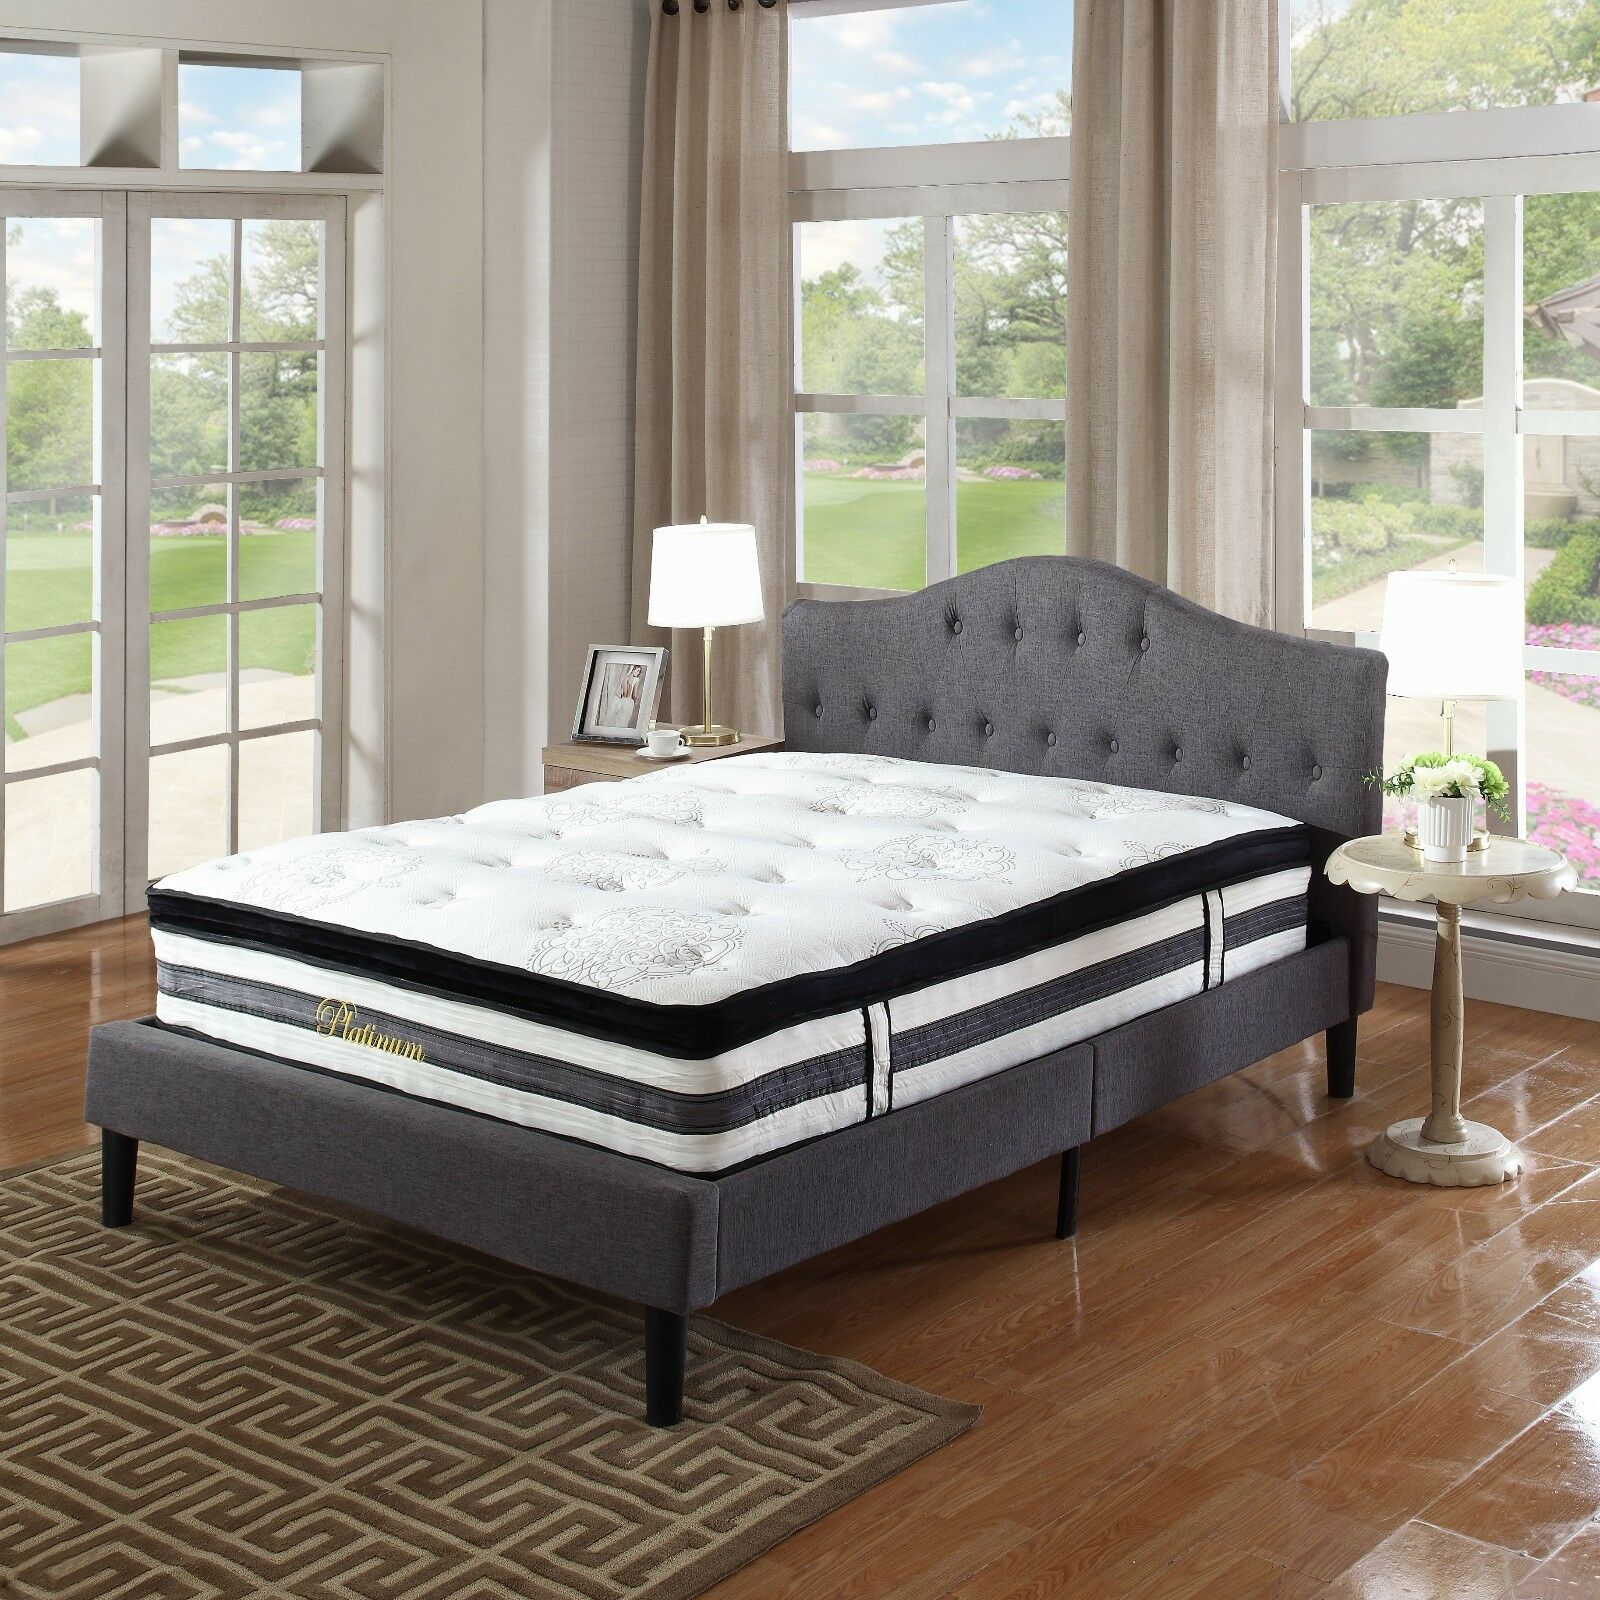 15 Inch Hybrid Innerspring And Memory Foam Mattress With Pillow Top - King